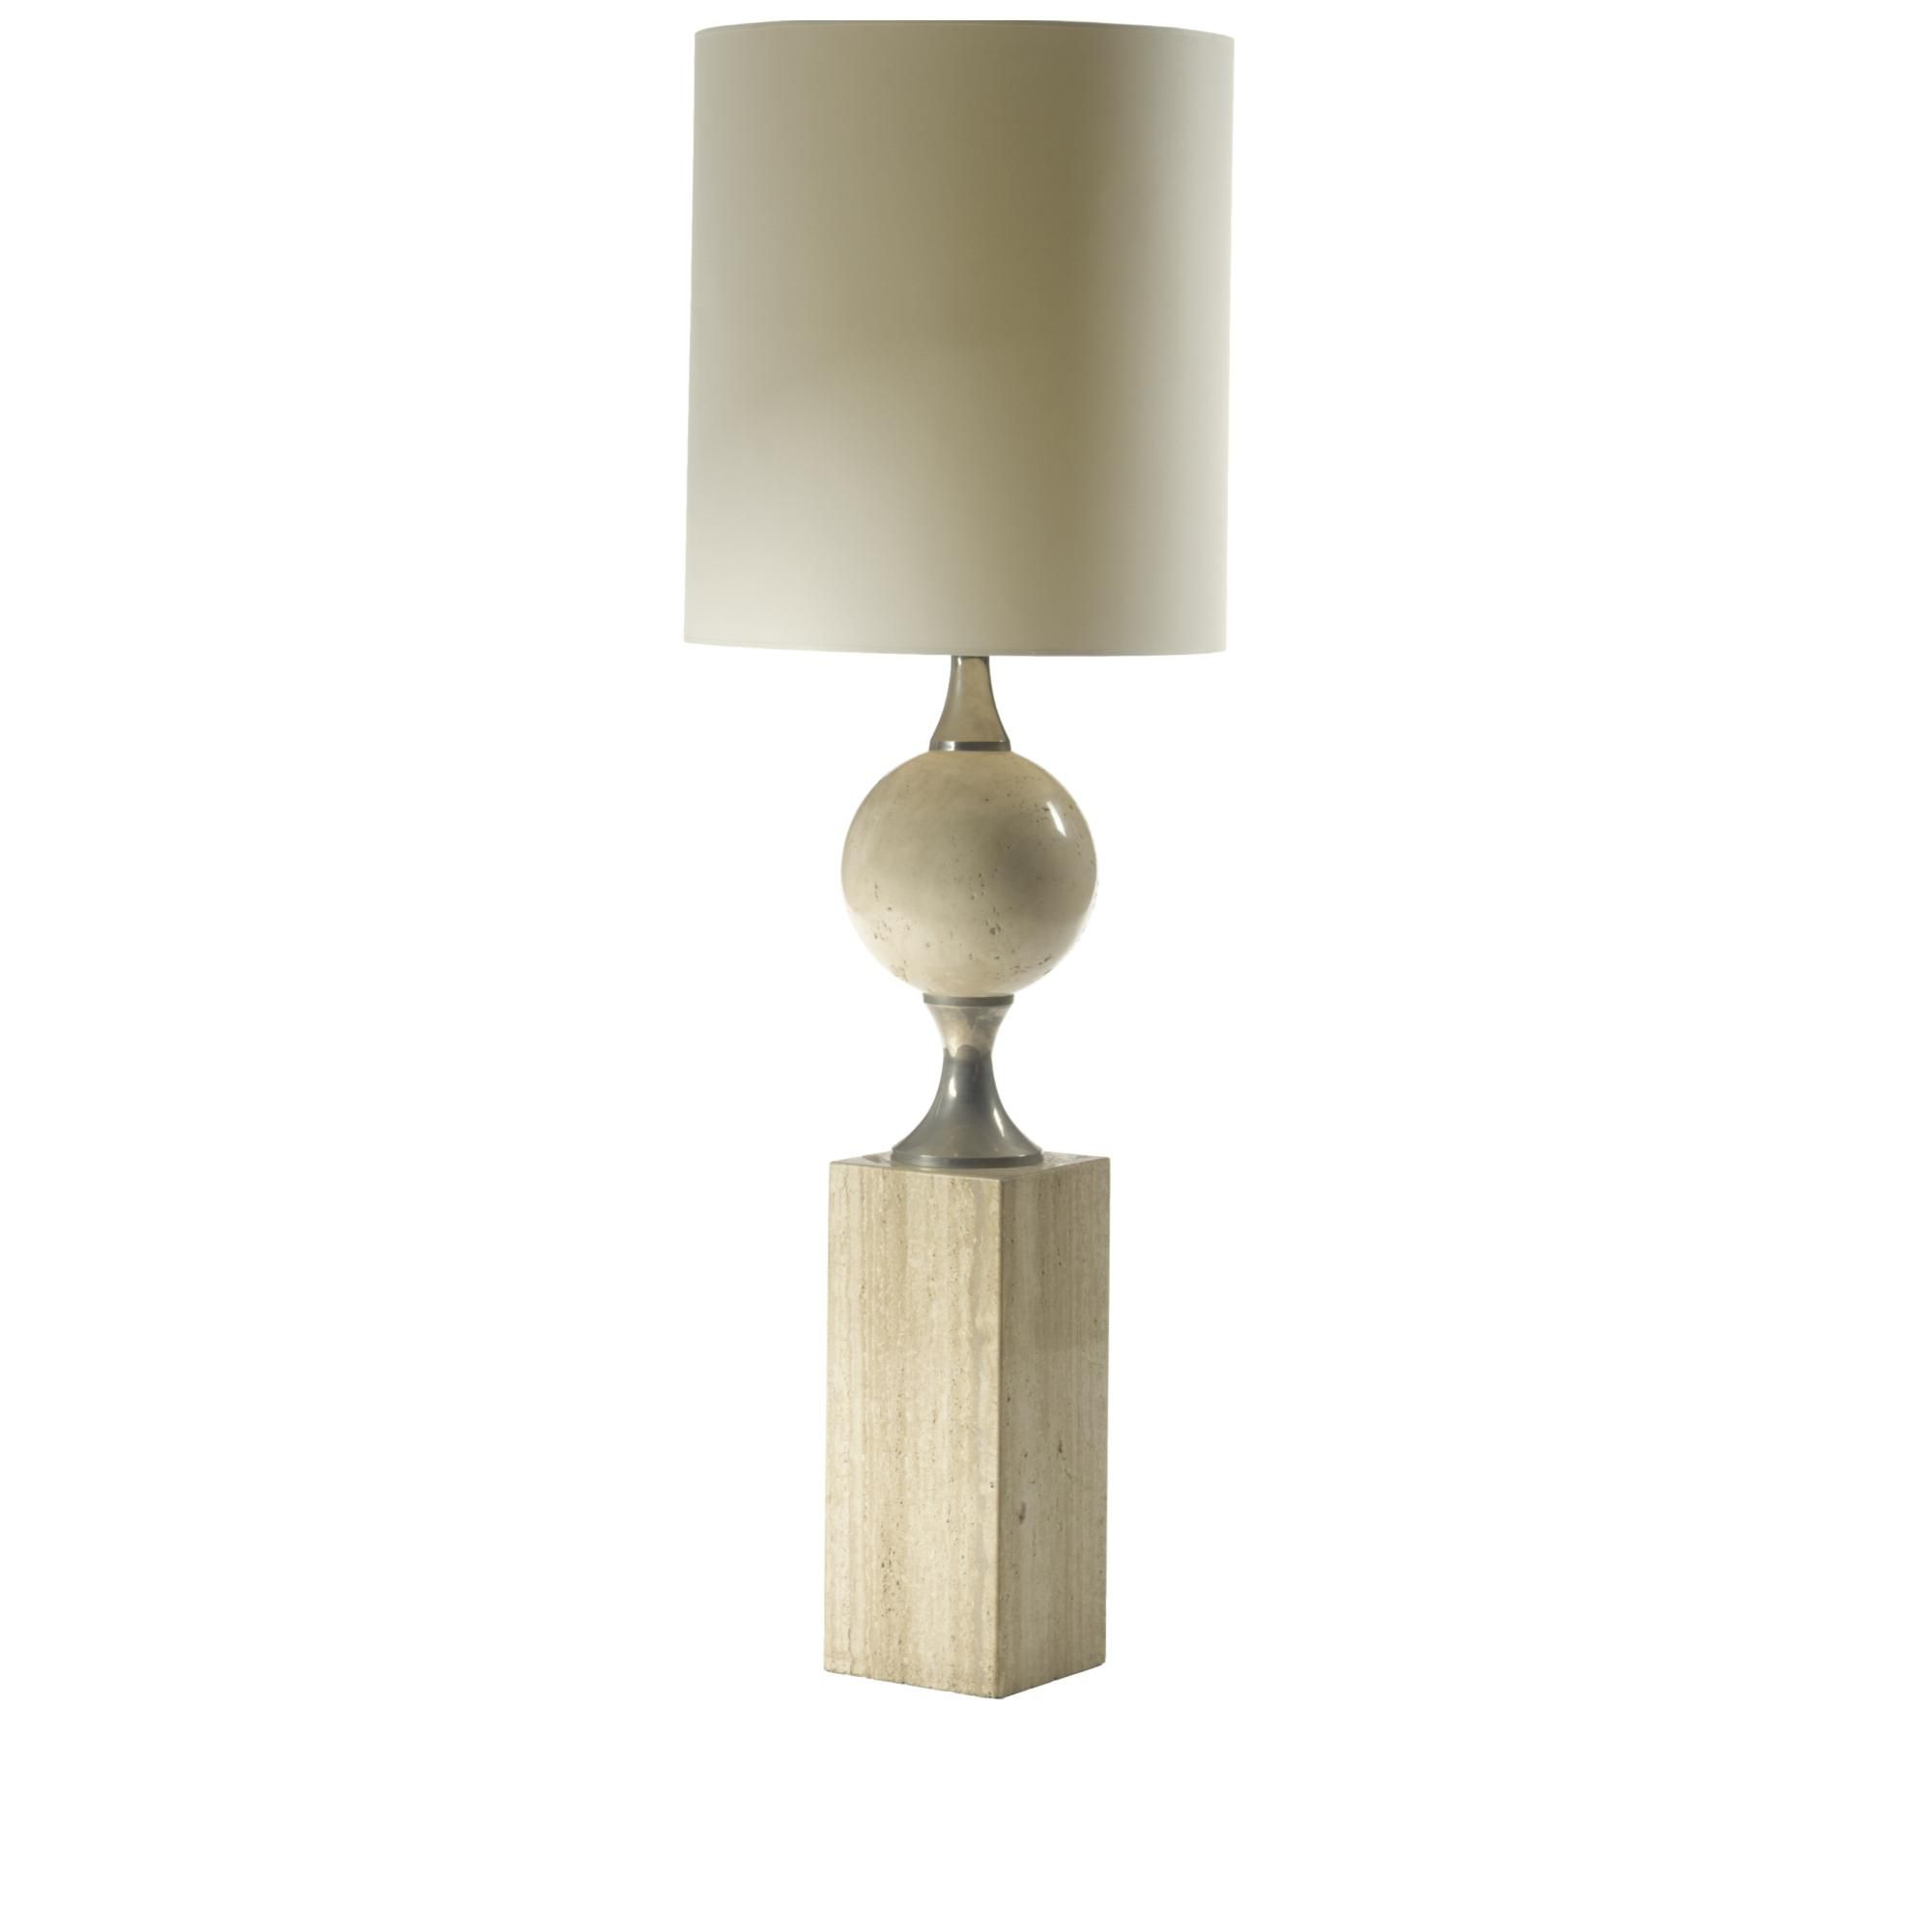 Maison jansen a metal and travertine standard lamp a three light maison jansen a metal and travertine standard lamp a three light fixture above two tapering metal segments joined by a sphere on a rectangular base arubaitofo Gallery